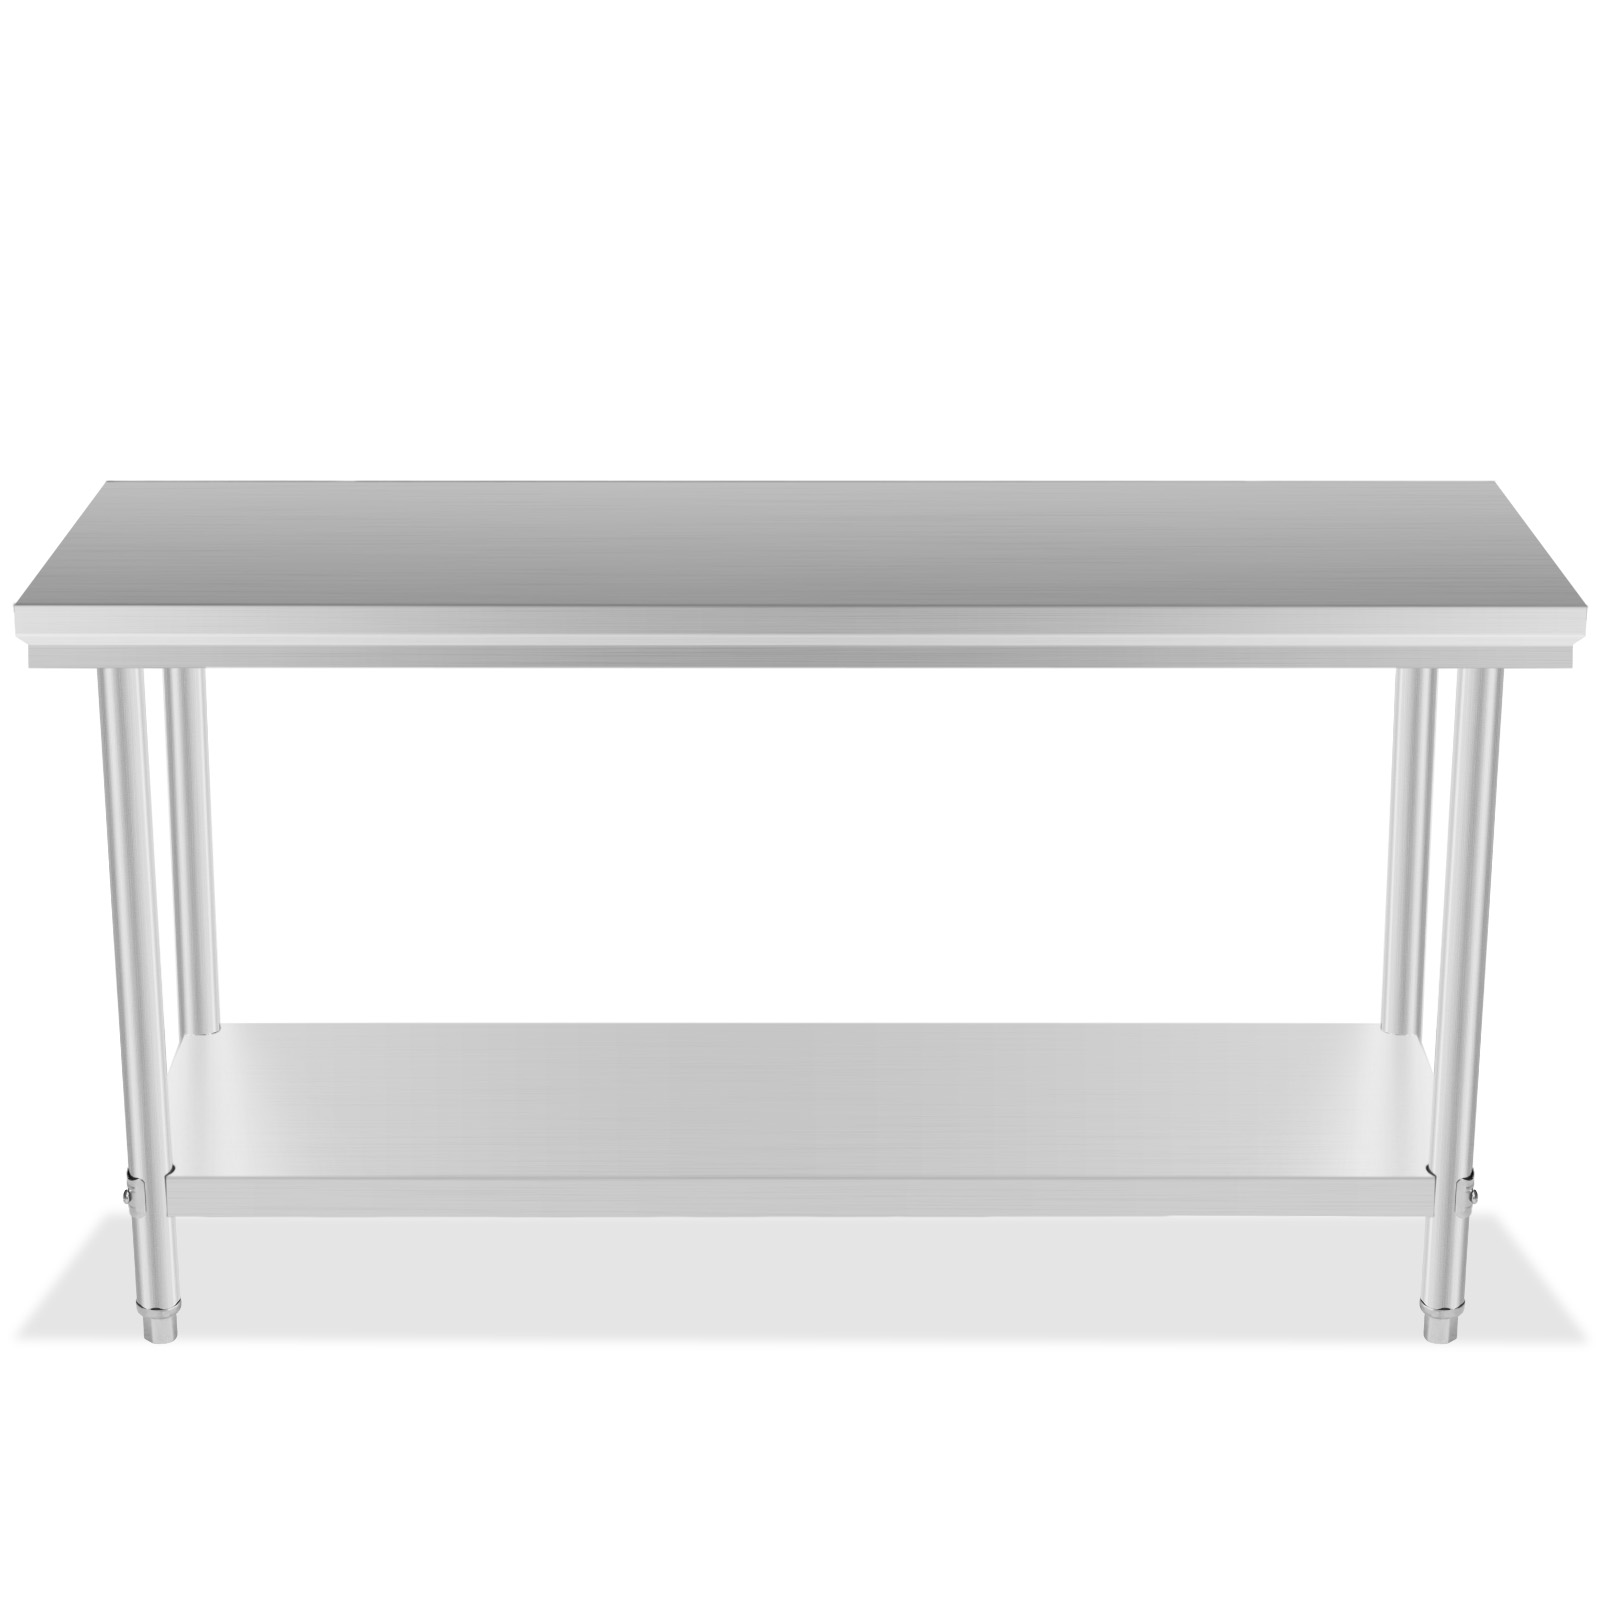 Stainless Steel Table Catering Work Bench Table Kitchen